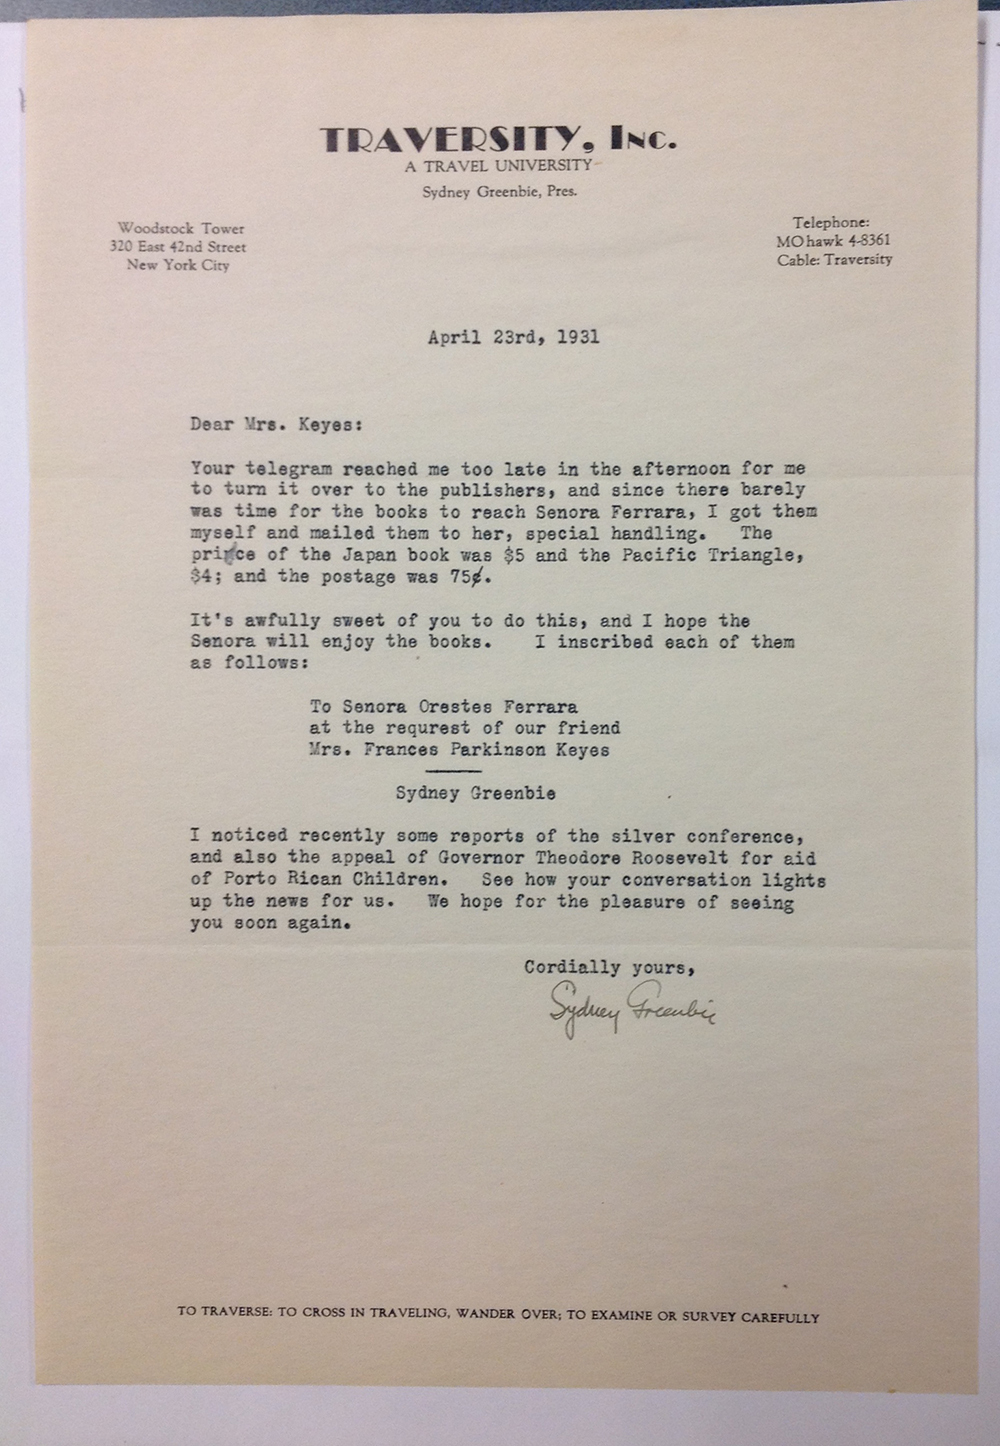 Letter from Sydney Greenbie to FPK from April 23, 1931